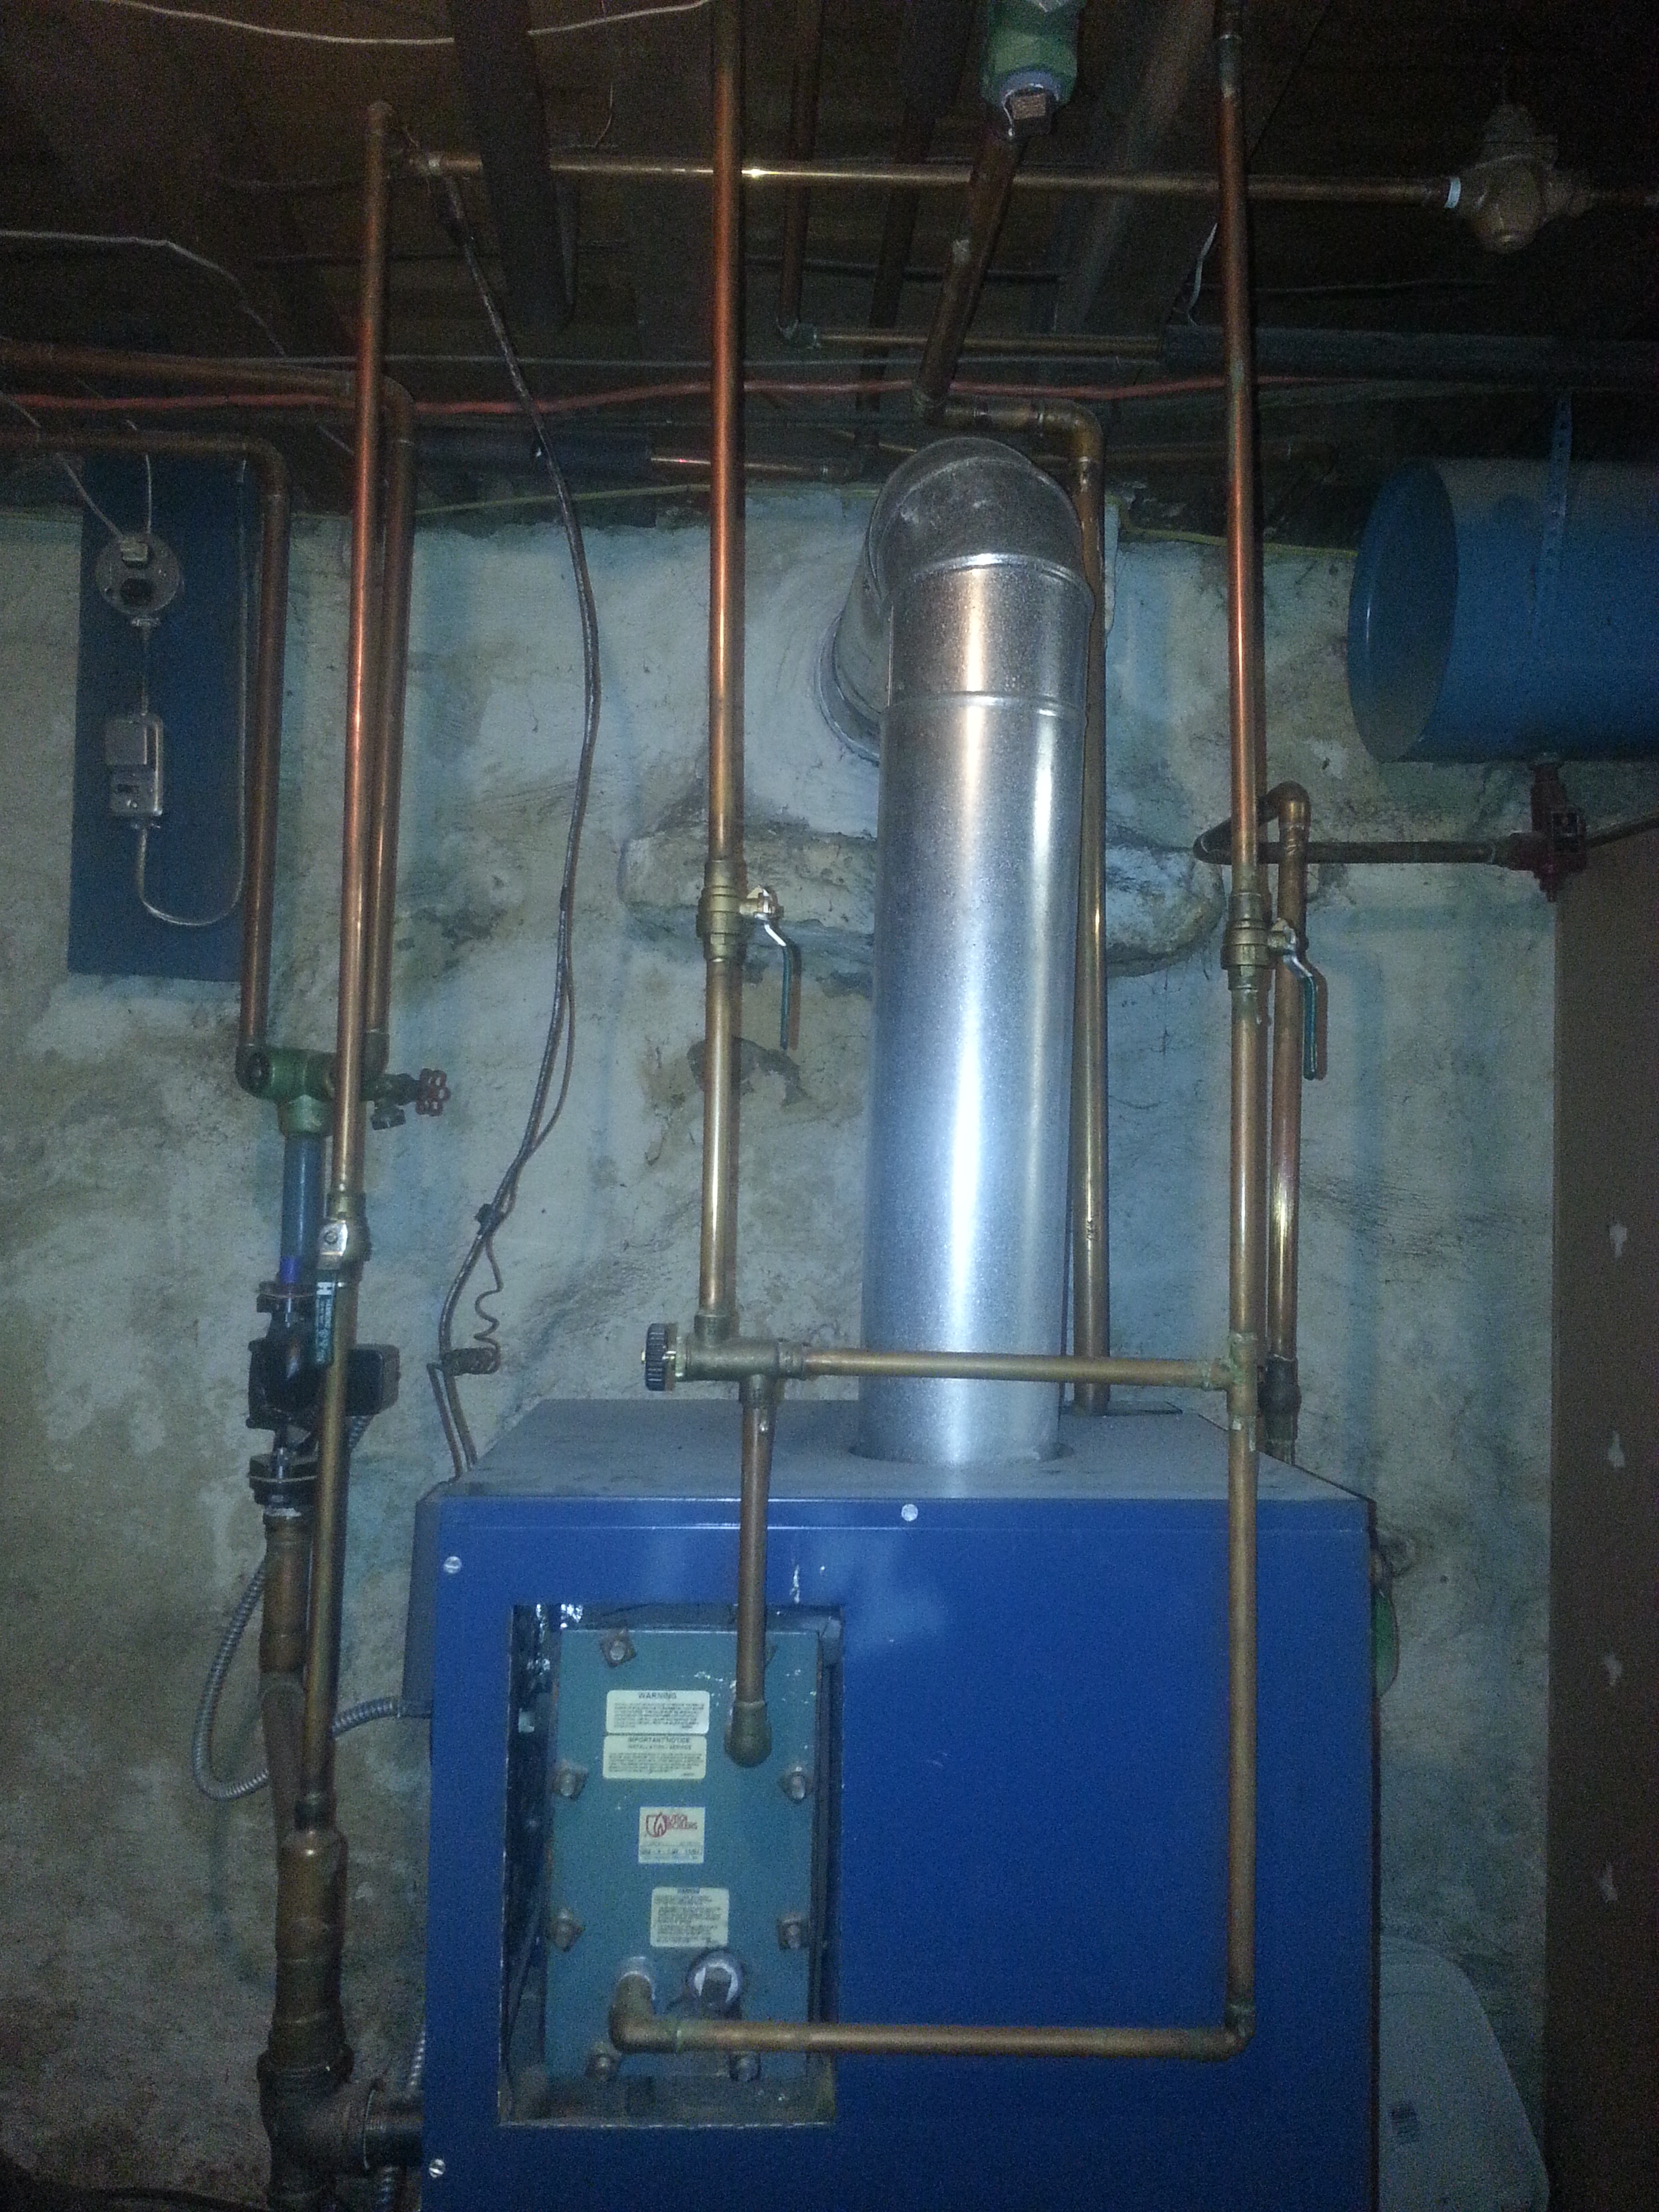 New gas boiler sizing — Heating Help: The Wall